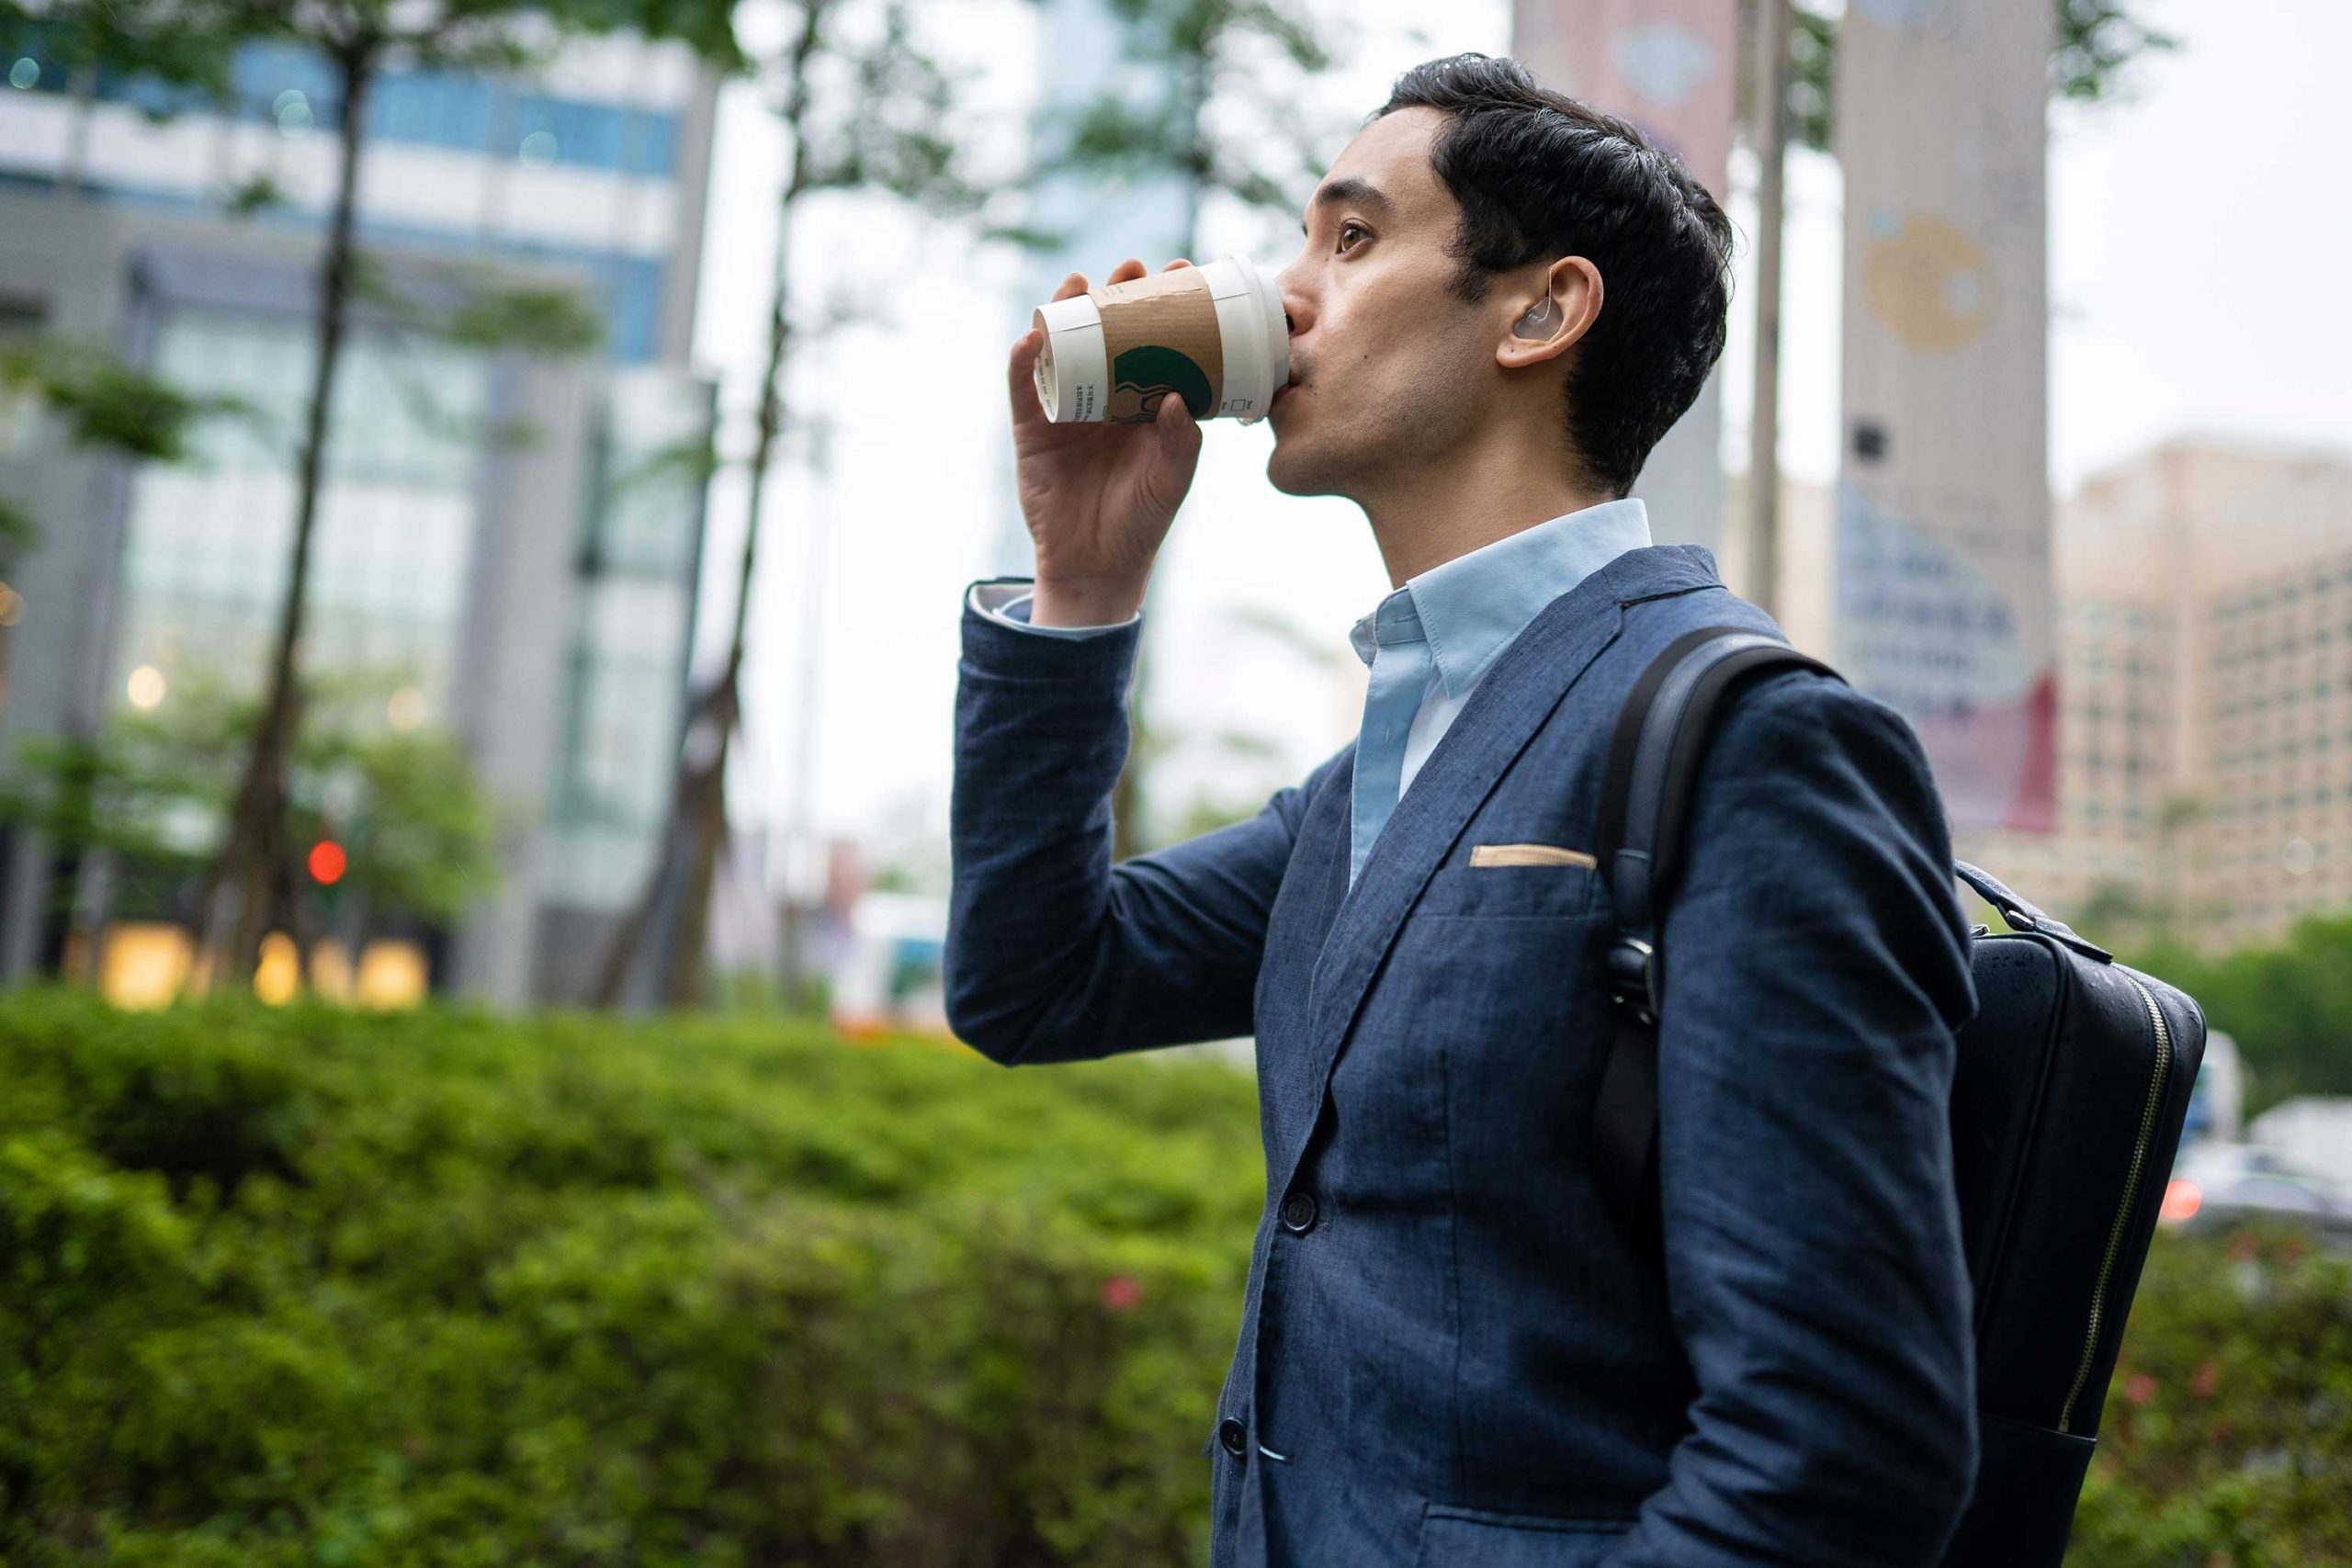 man in suit walking and drinking coffee